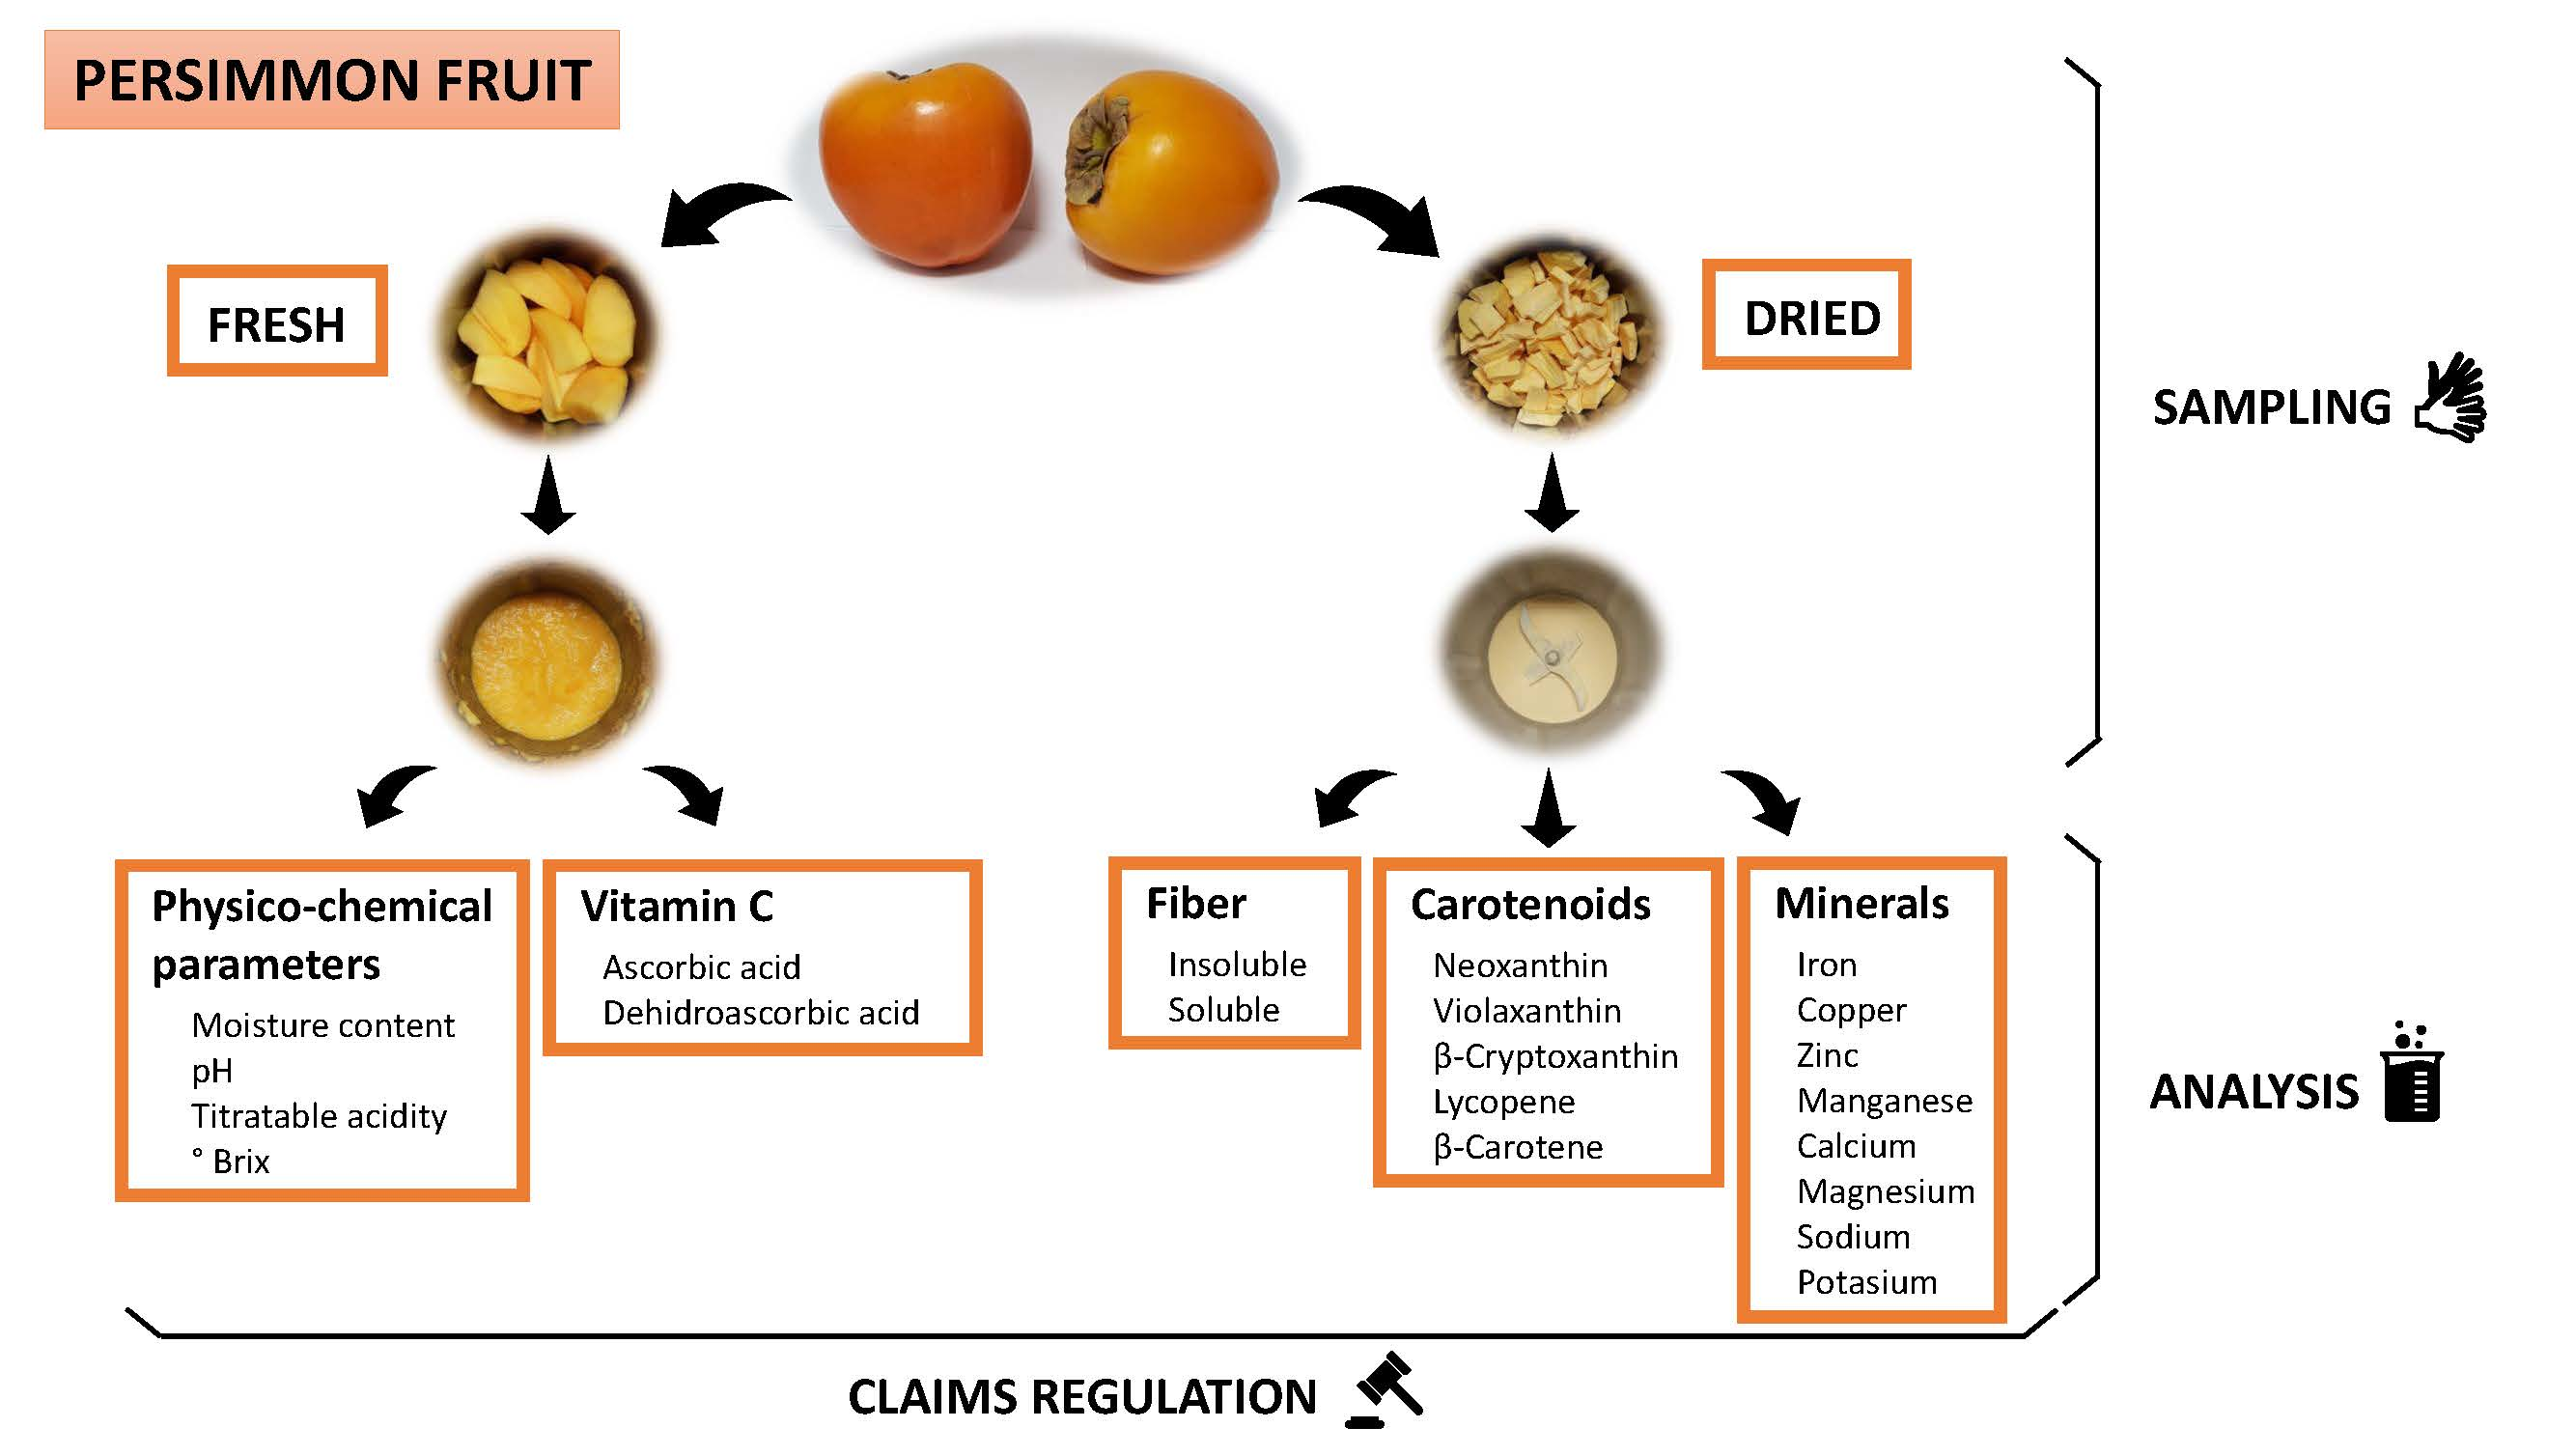 Potential Nutrition and Health Claims